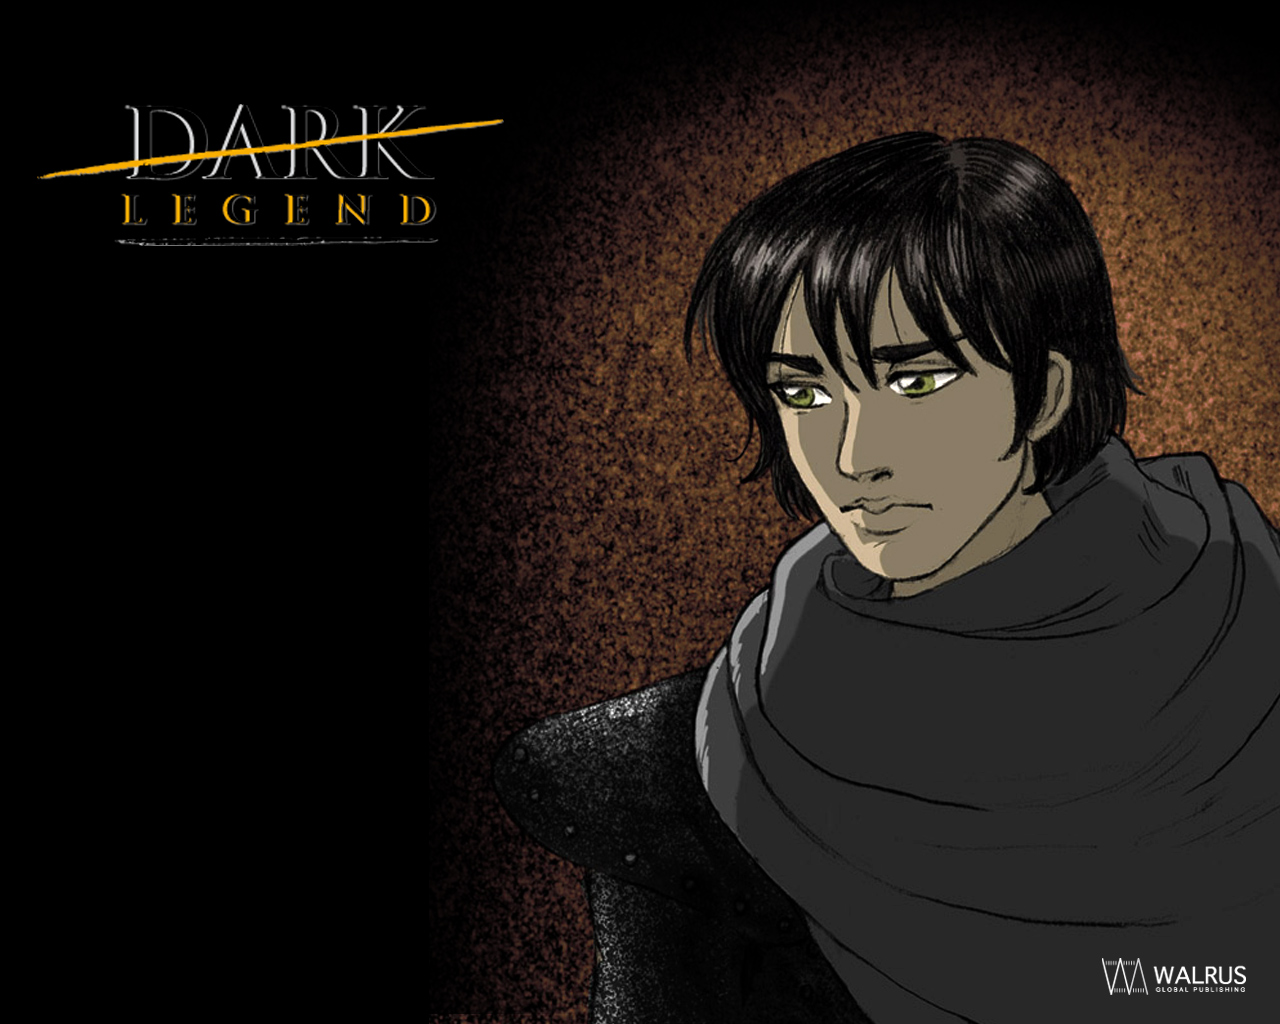 Dark Legend (fuente: Editorial Walrus)